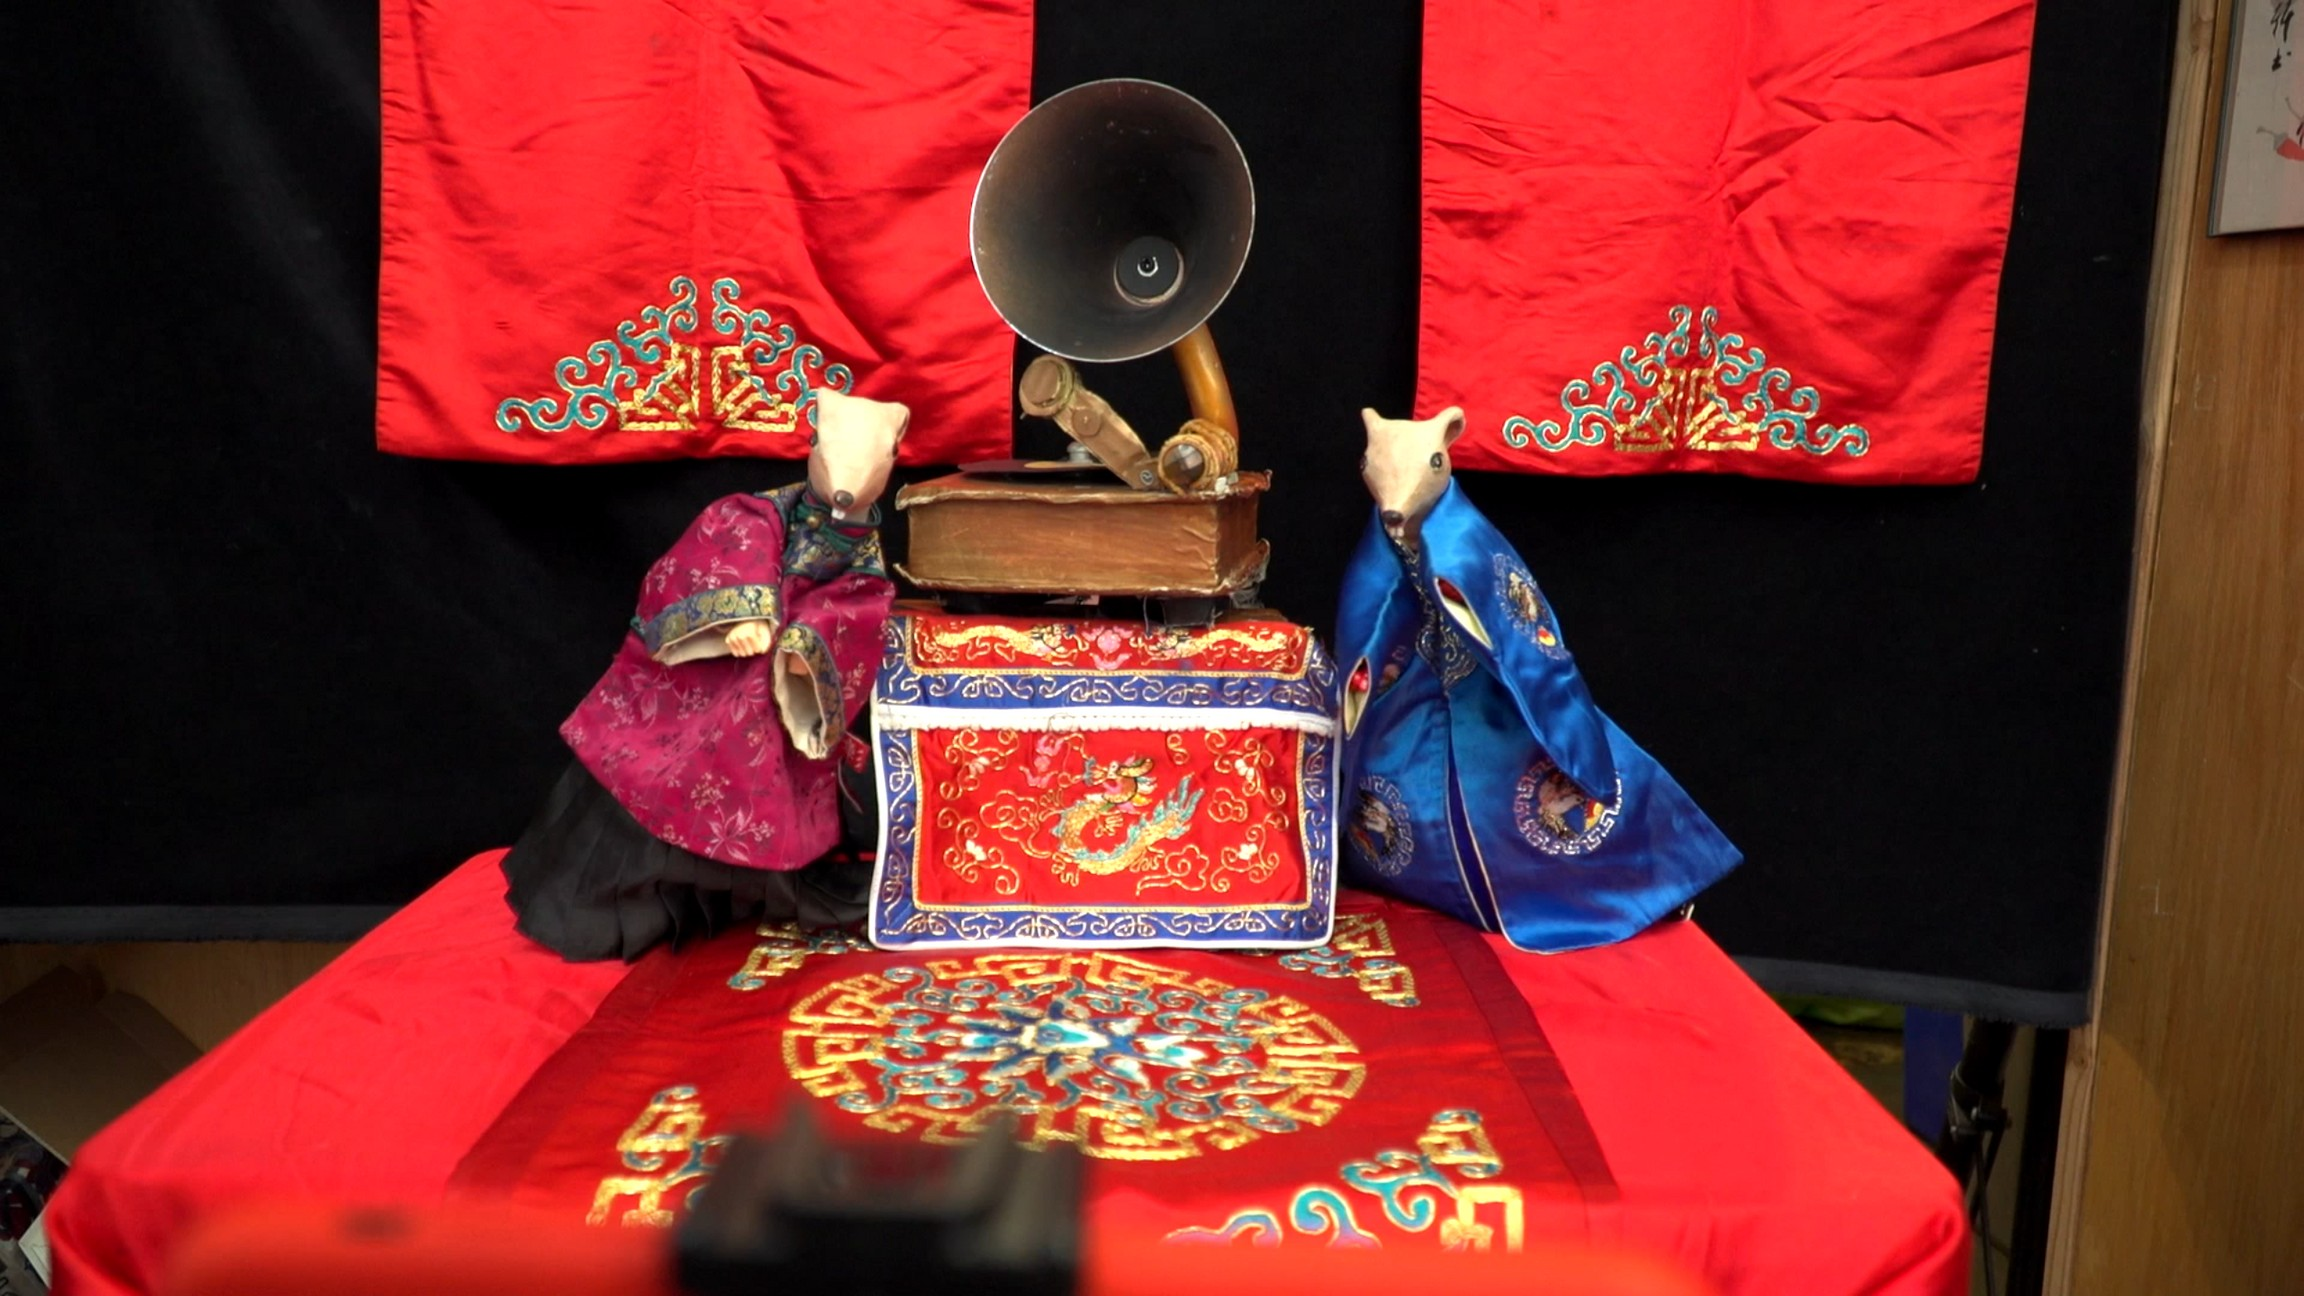 Two mouse-shaped puppets wearing traditional Chinese robes, one purple, one blue, rest against a model gramophone. They are on a stage draped with embroidered red silk.